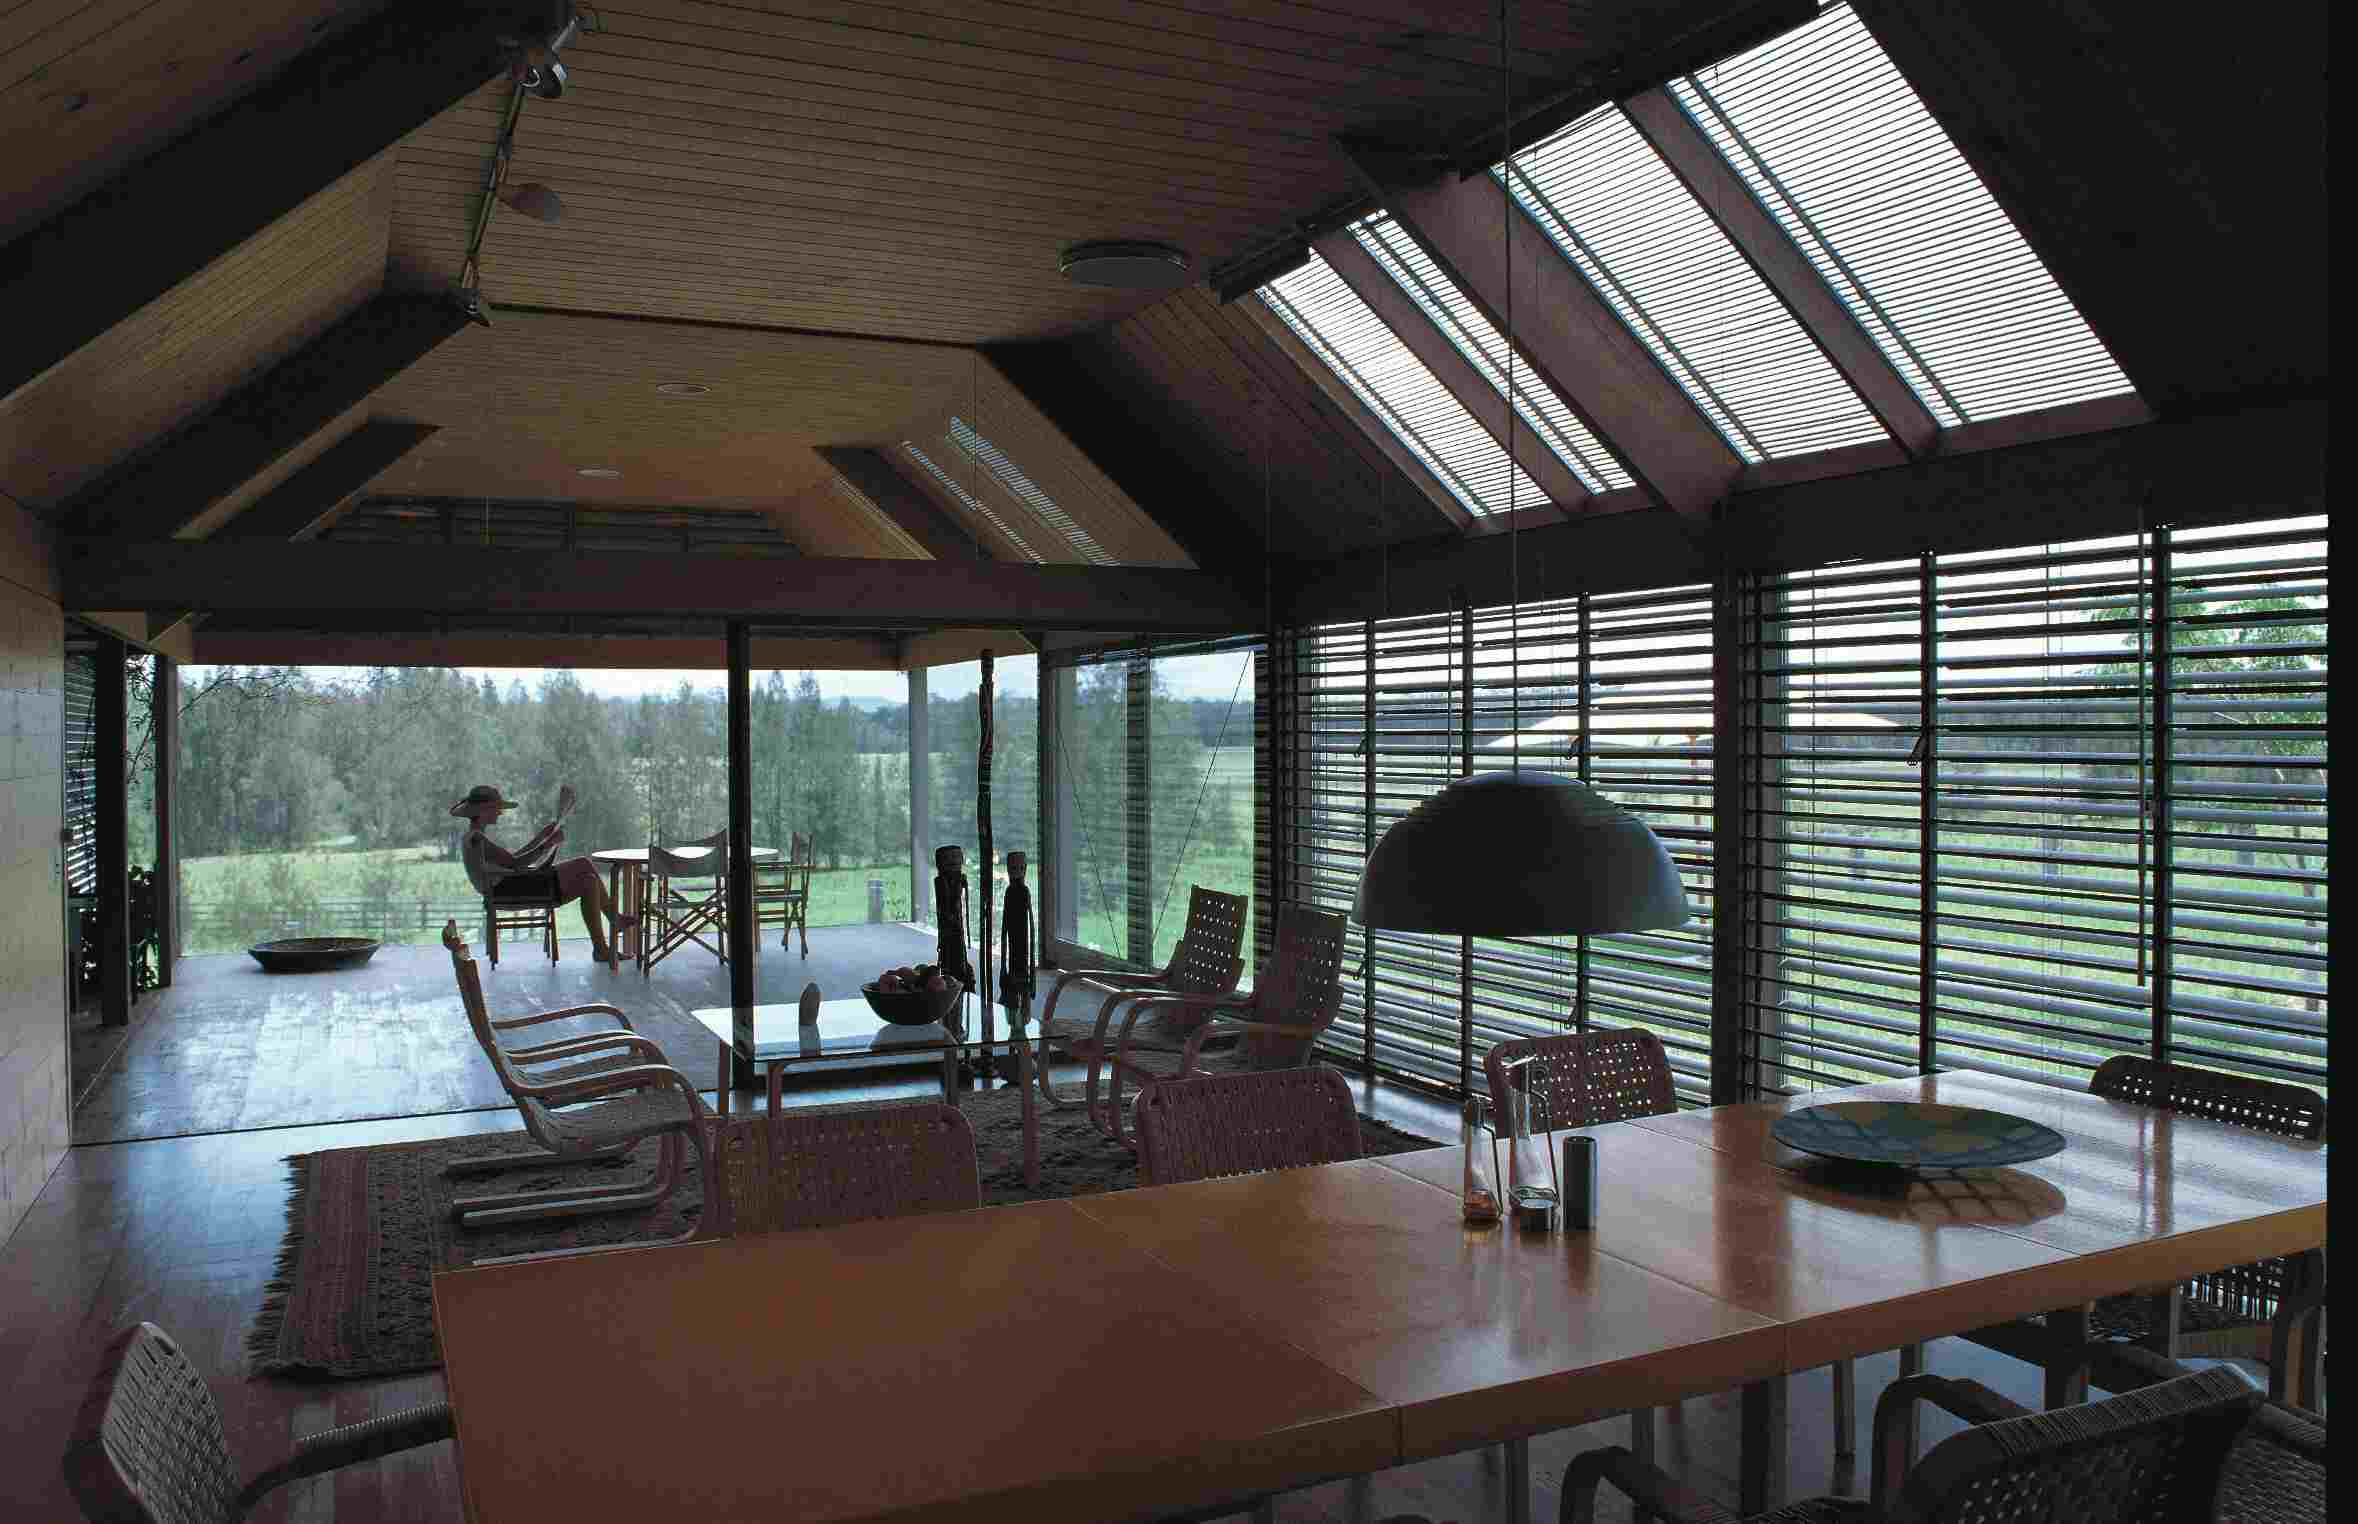 Pritzker Prize-winning architect Glenn Murcutt used local timber for the Marie Short House